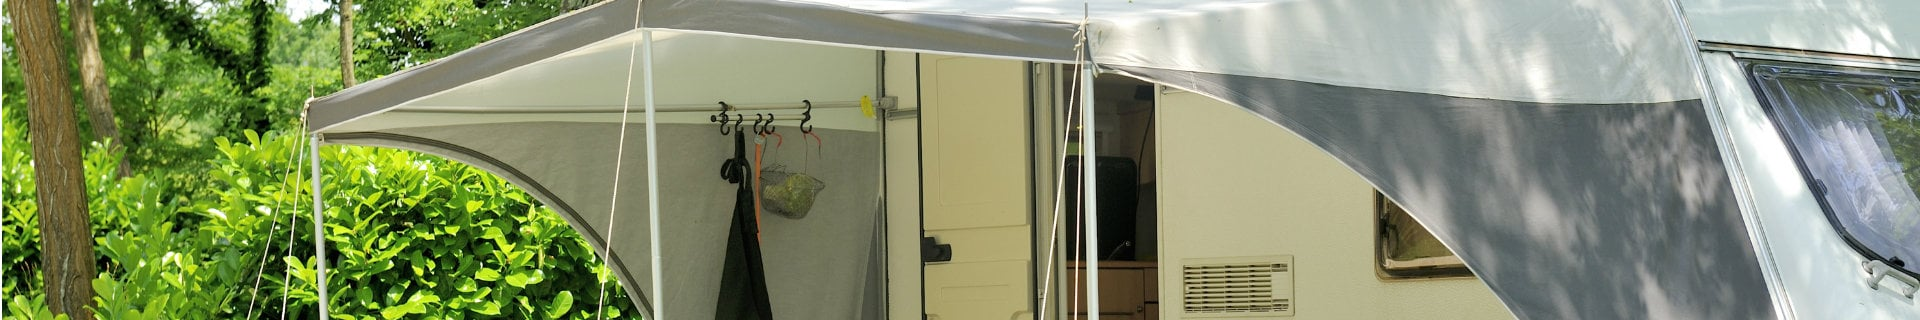 Awning or canopy? I'll help you choose!